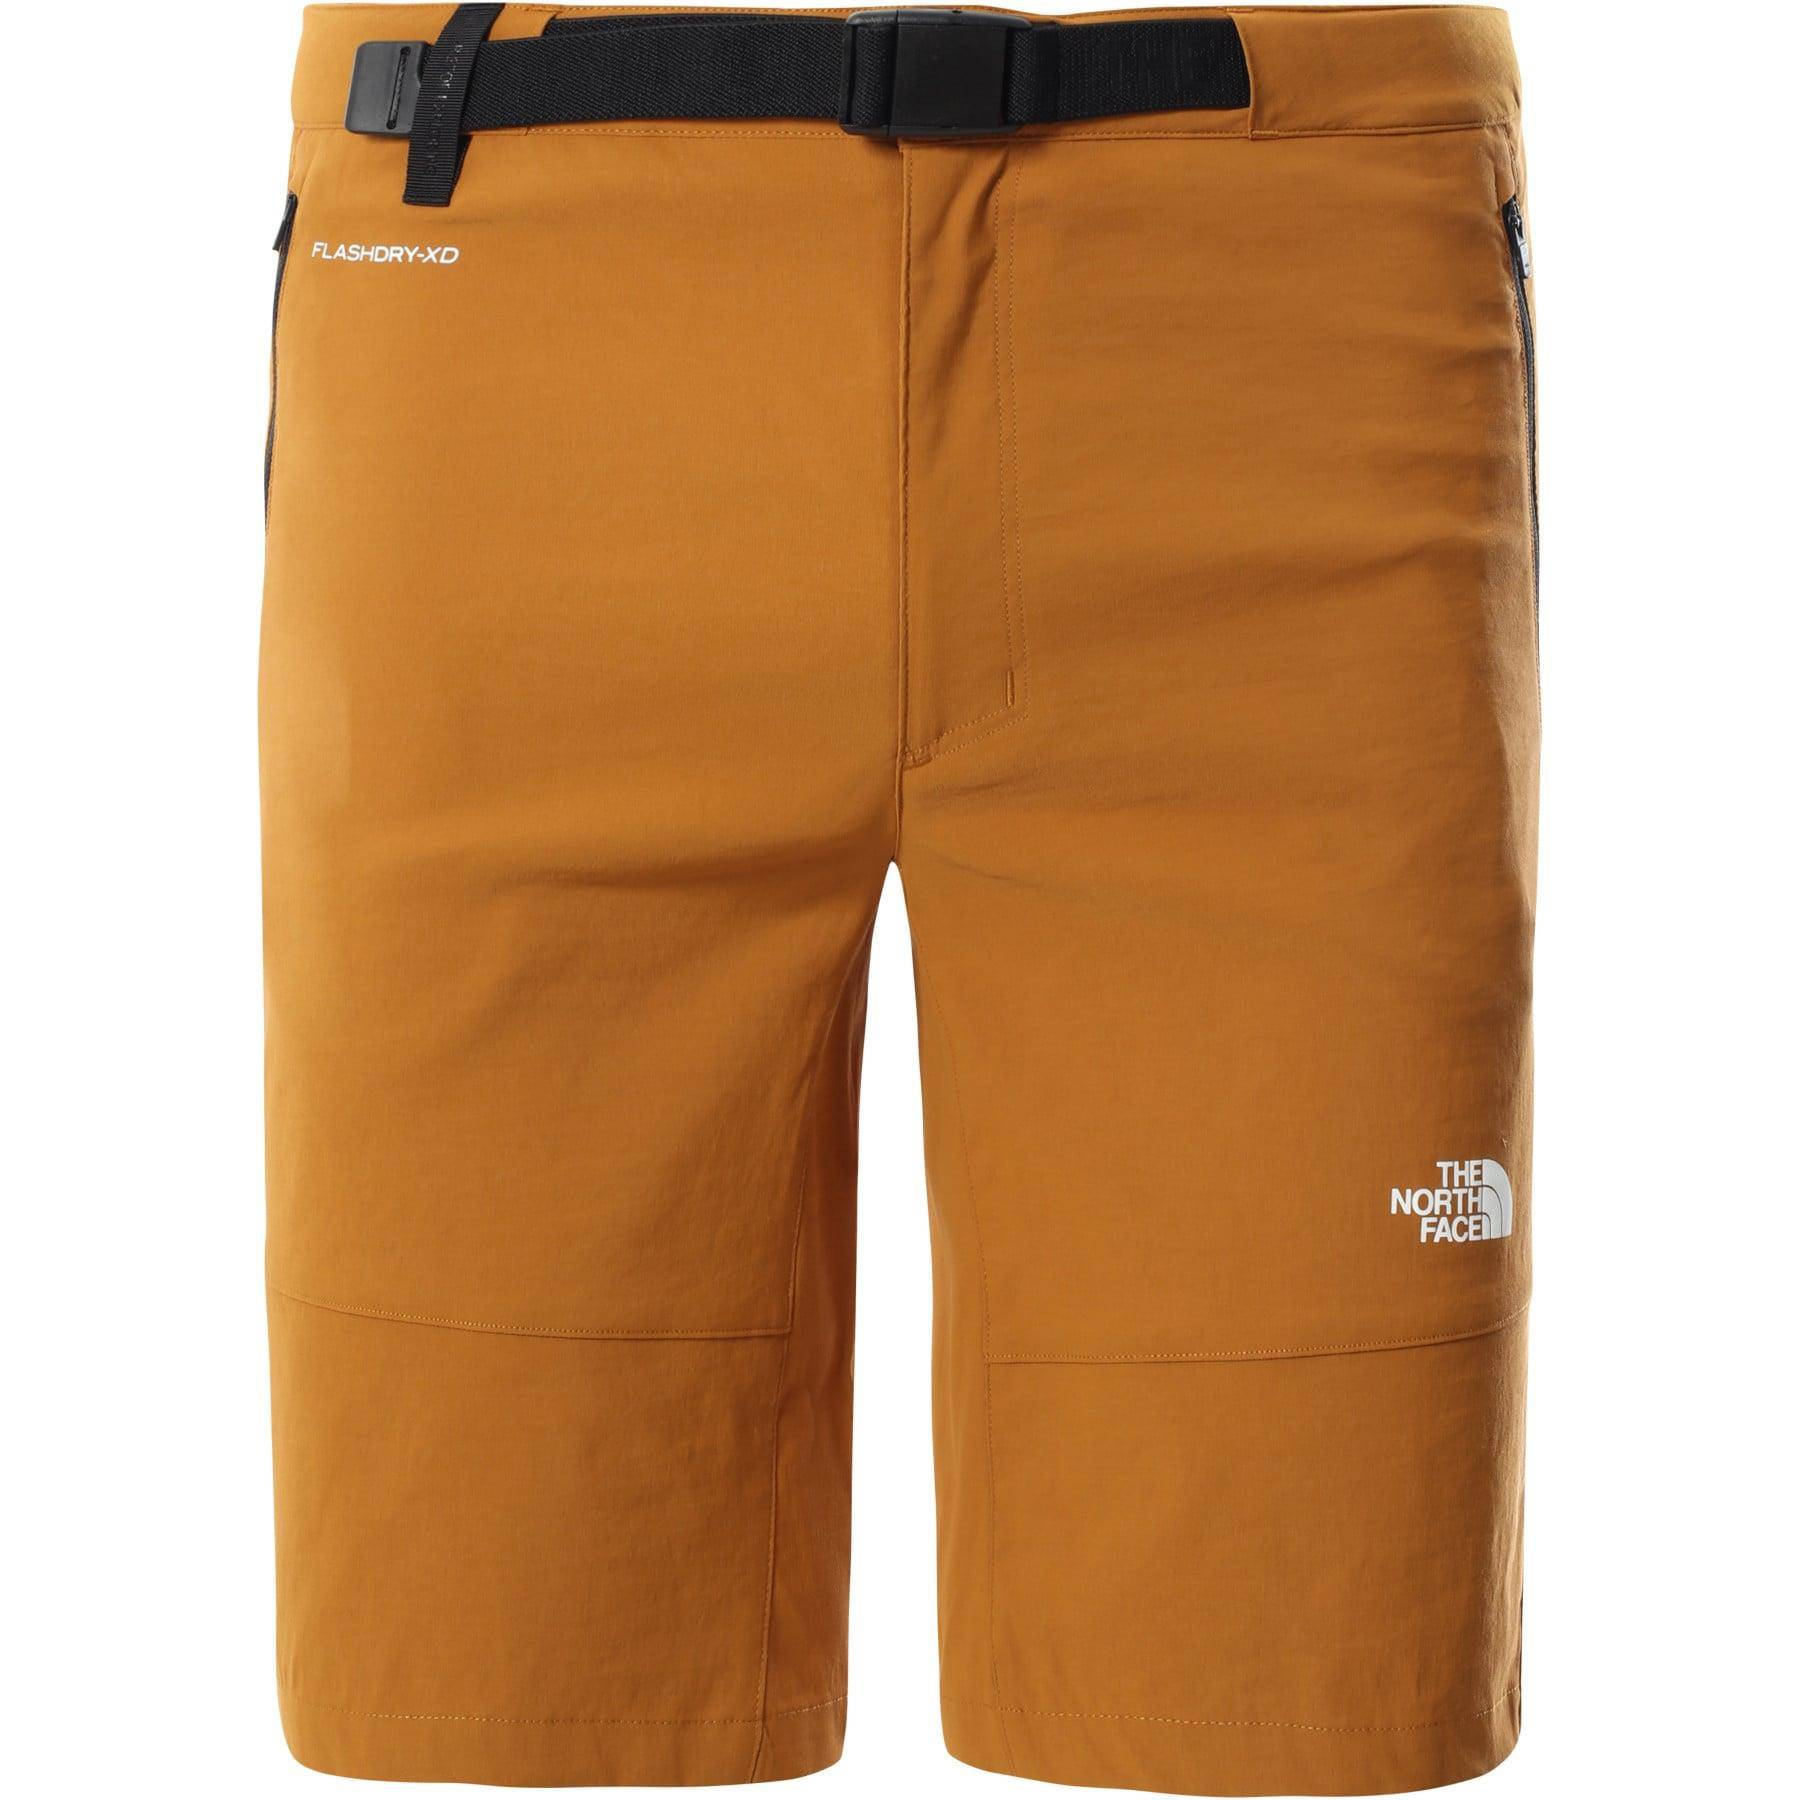 Spodenki The North Face Ligtning T9495OVC7